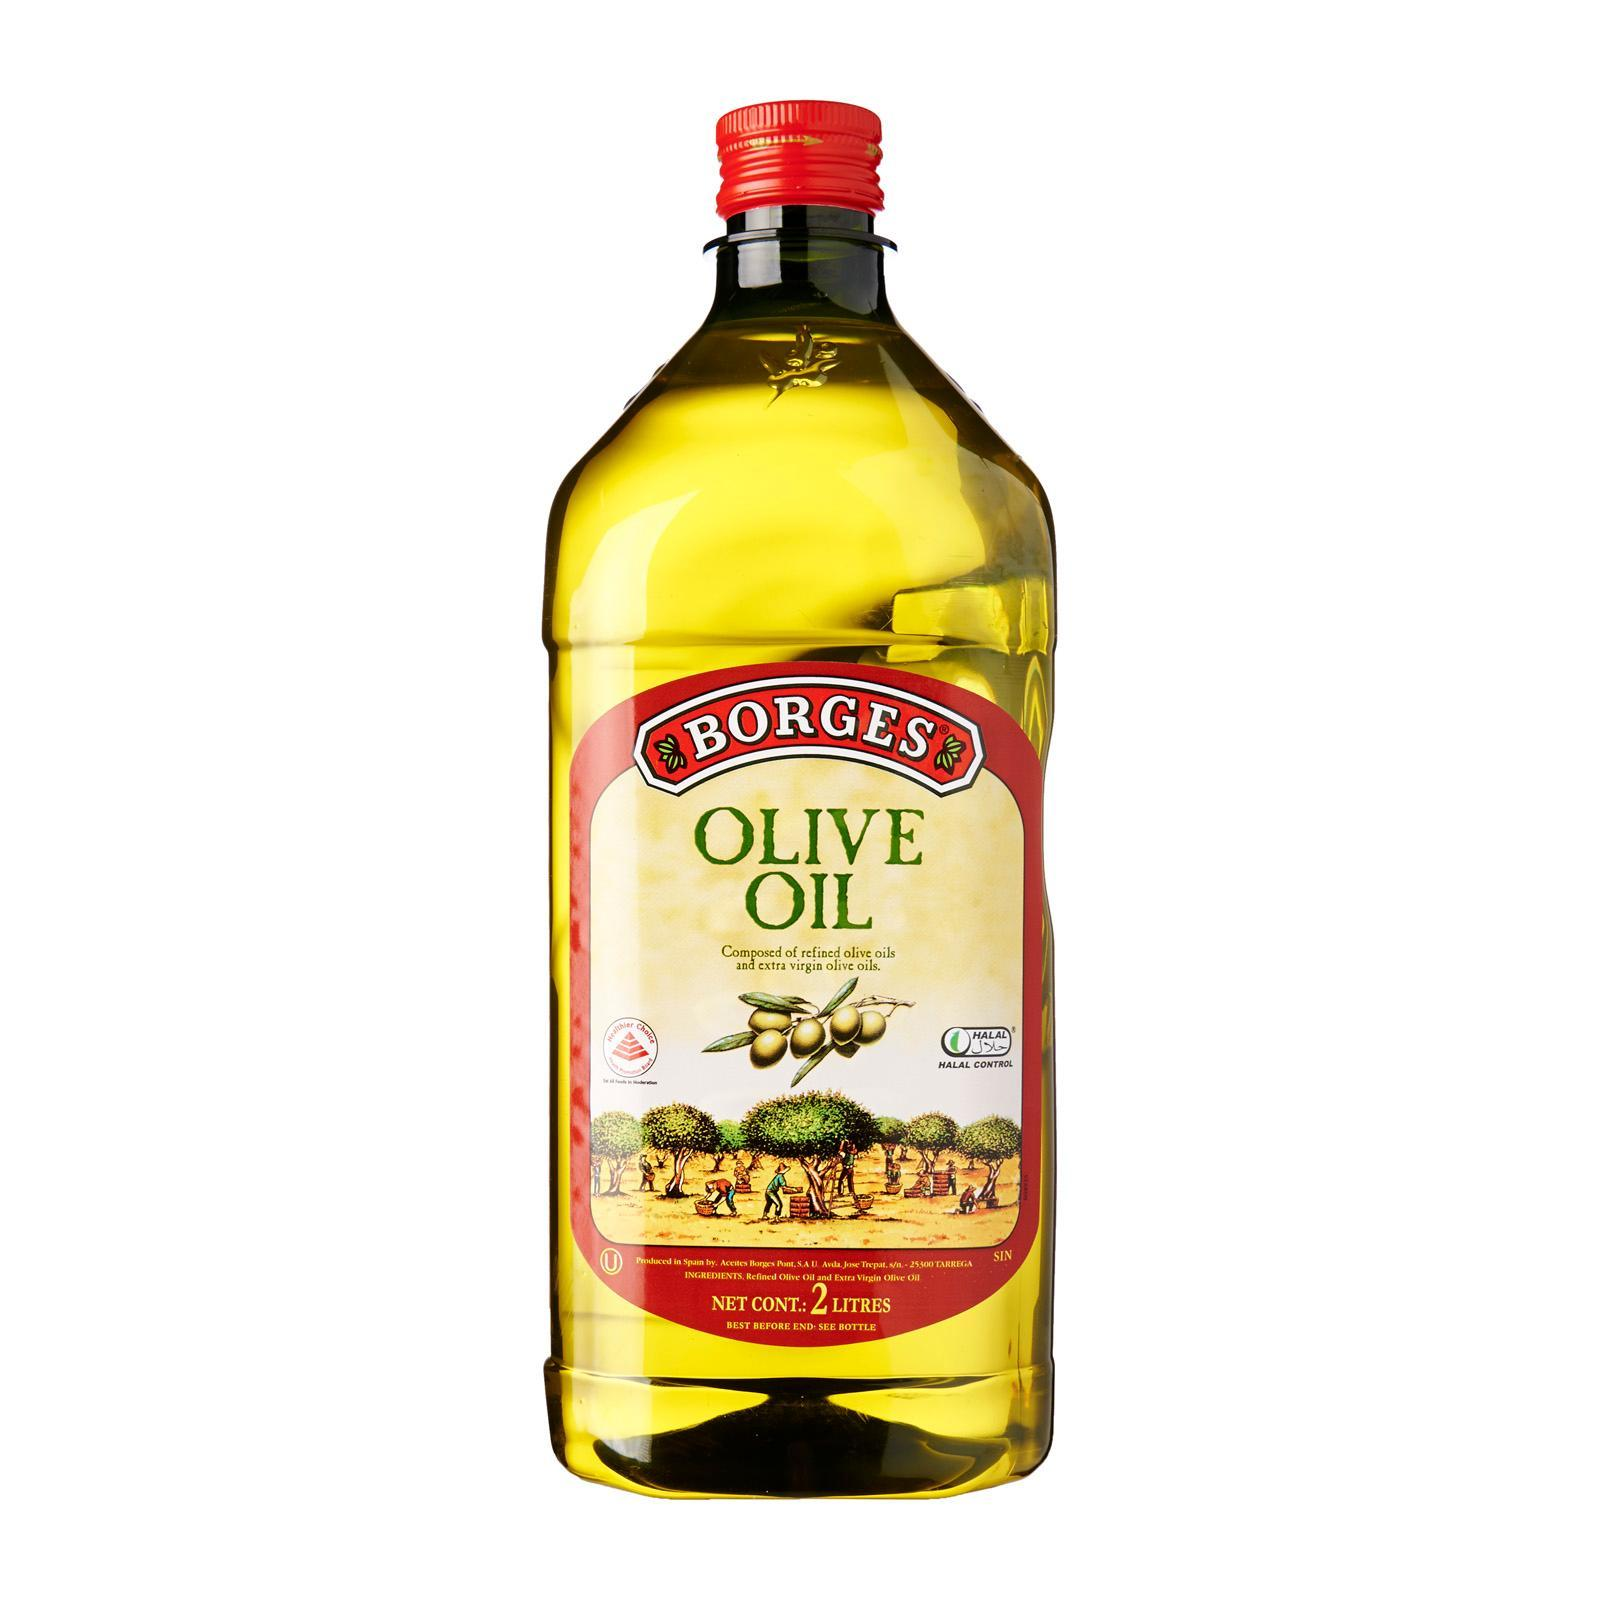 Borges Classic Olive Oil